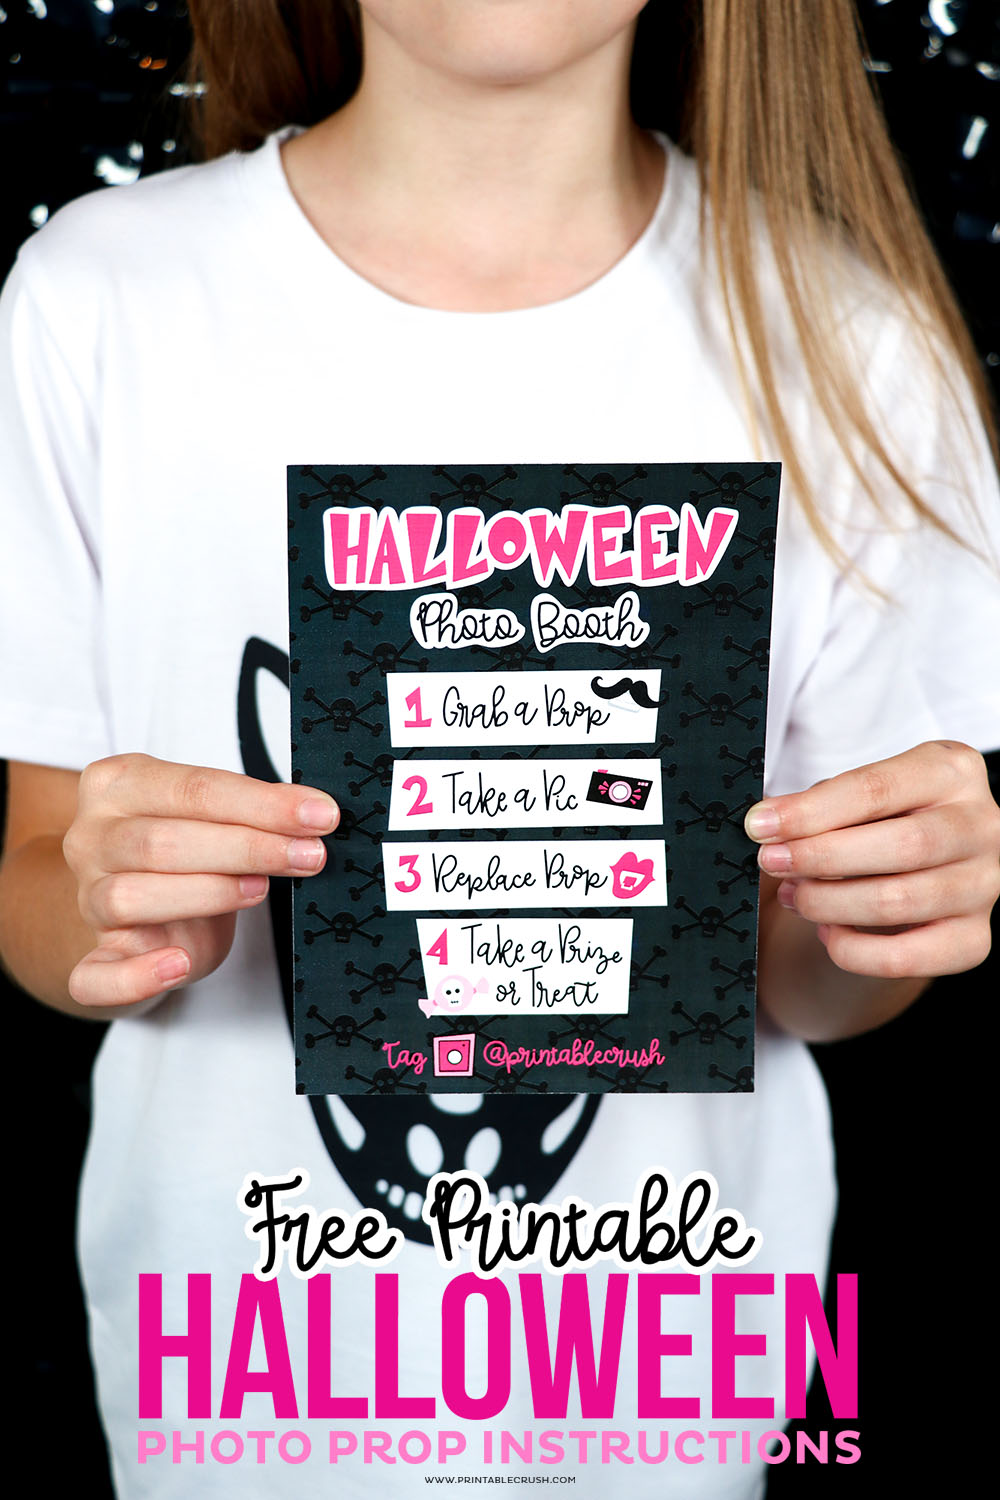 Free Printable Halloween Photo Prop Instructions